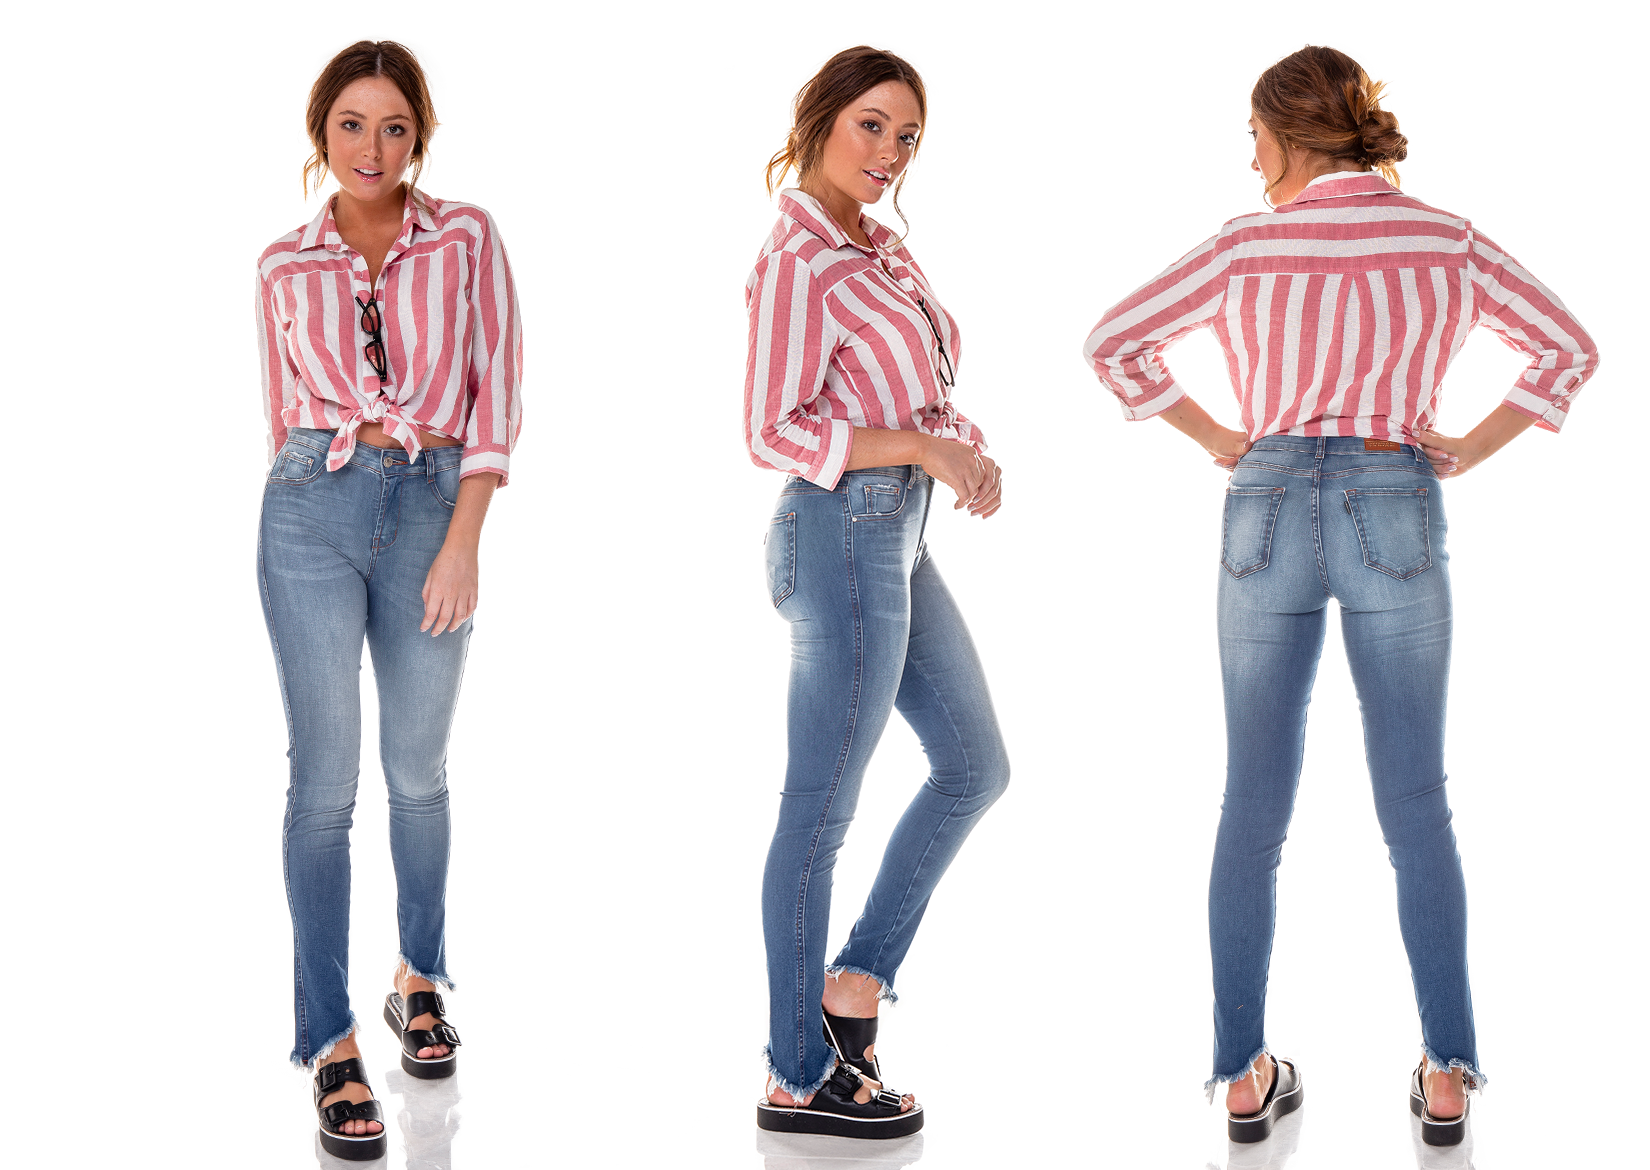 dz2701 calca skinny media barra inclinada denim zero trio